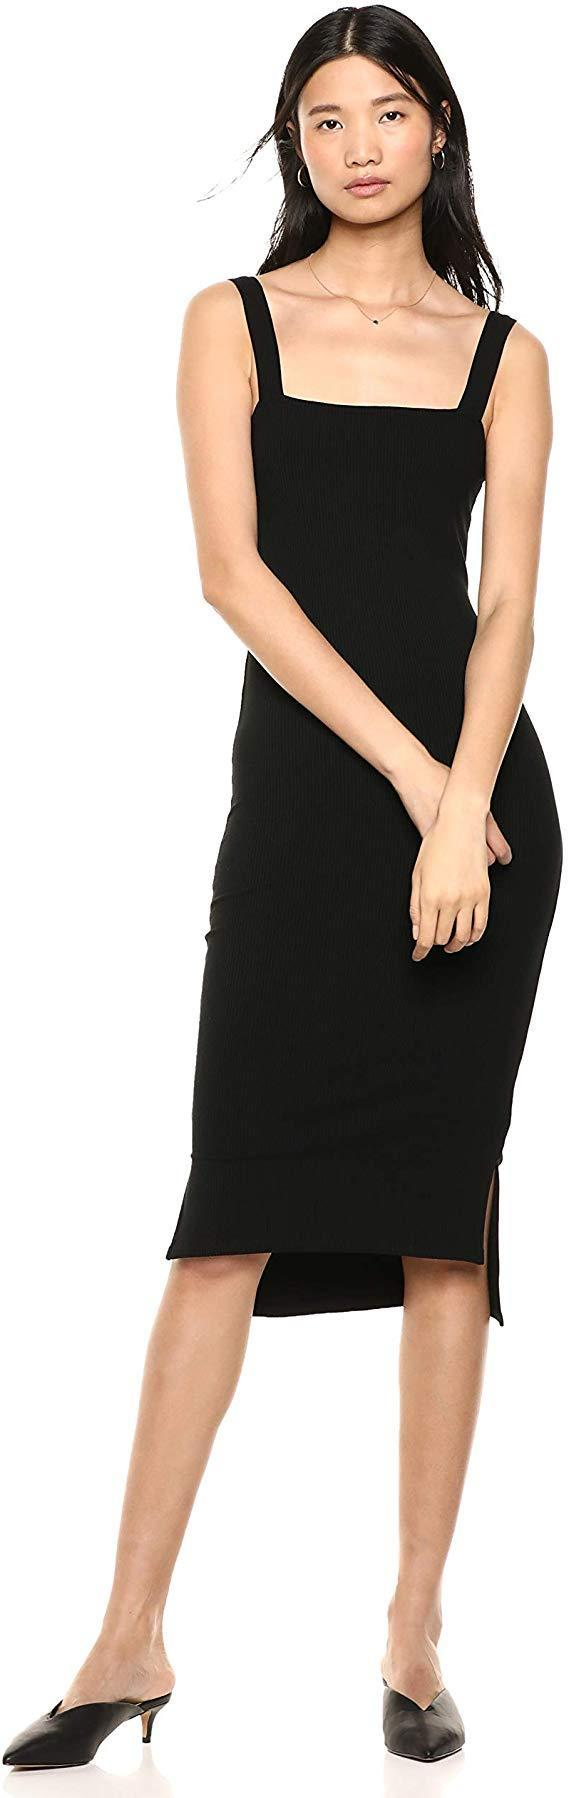 """<h2>Bodycon Dresses</h2><br>There might be nothing more chic and sleek than a form-fitting midi dress. <br><br><strong>The Drop</strong> Square Neck Midi Dress, $, available at <a href=""""https://amzn.to/2OQ8Sb8"""" rel=""""nofollow noopener"""" target=""""_blank"""" data-ylk=""""slk:Amazon"""" class=""""link rapid-noclick-resp"""">Amazon</a>"""